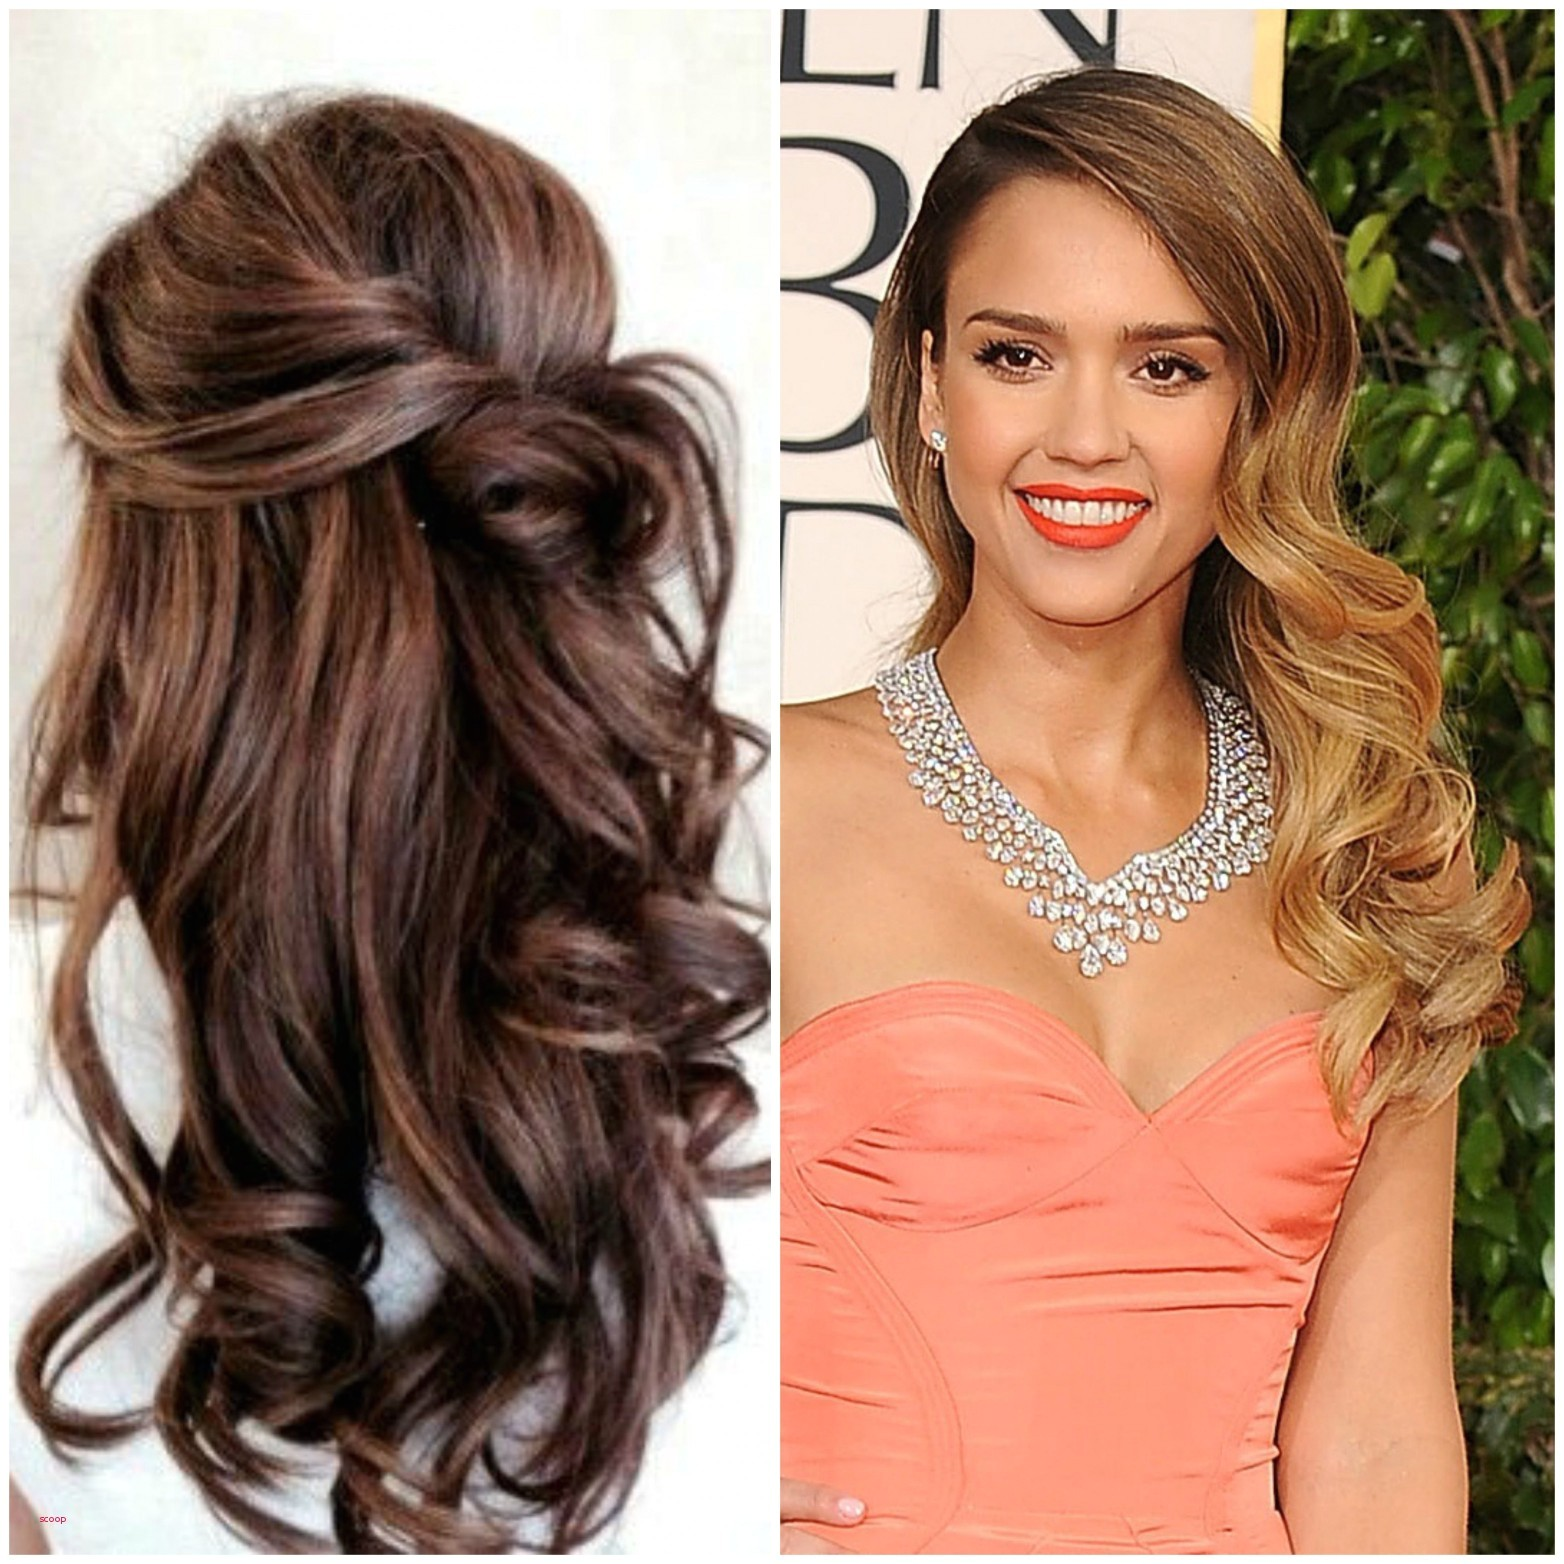 Awesome Hairstyle for Little Girls with Long Hair wallpaper details